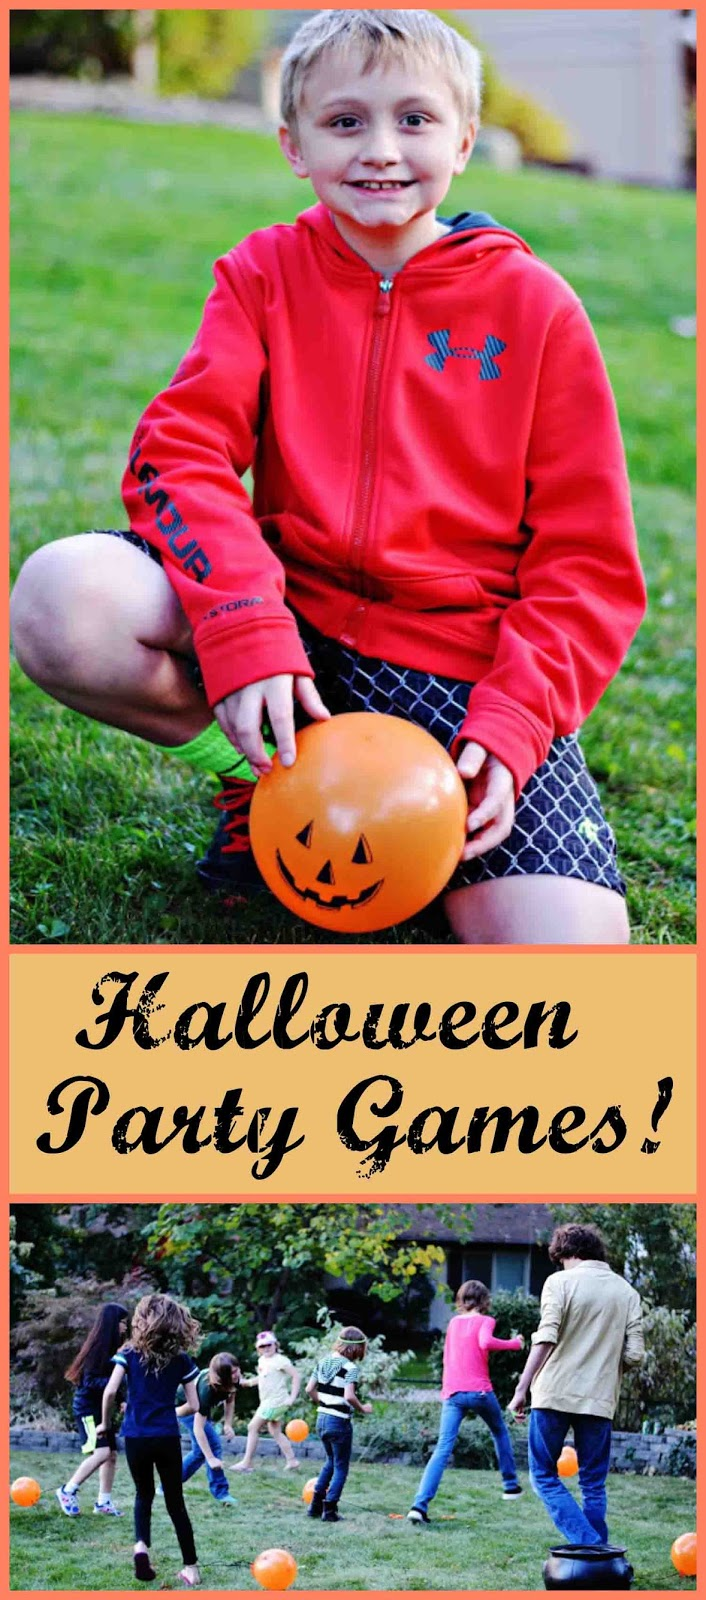 Theresa's Mixed Nuts: Halloween Party Games Part 2